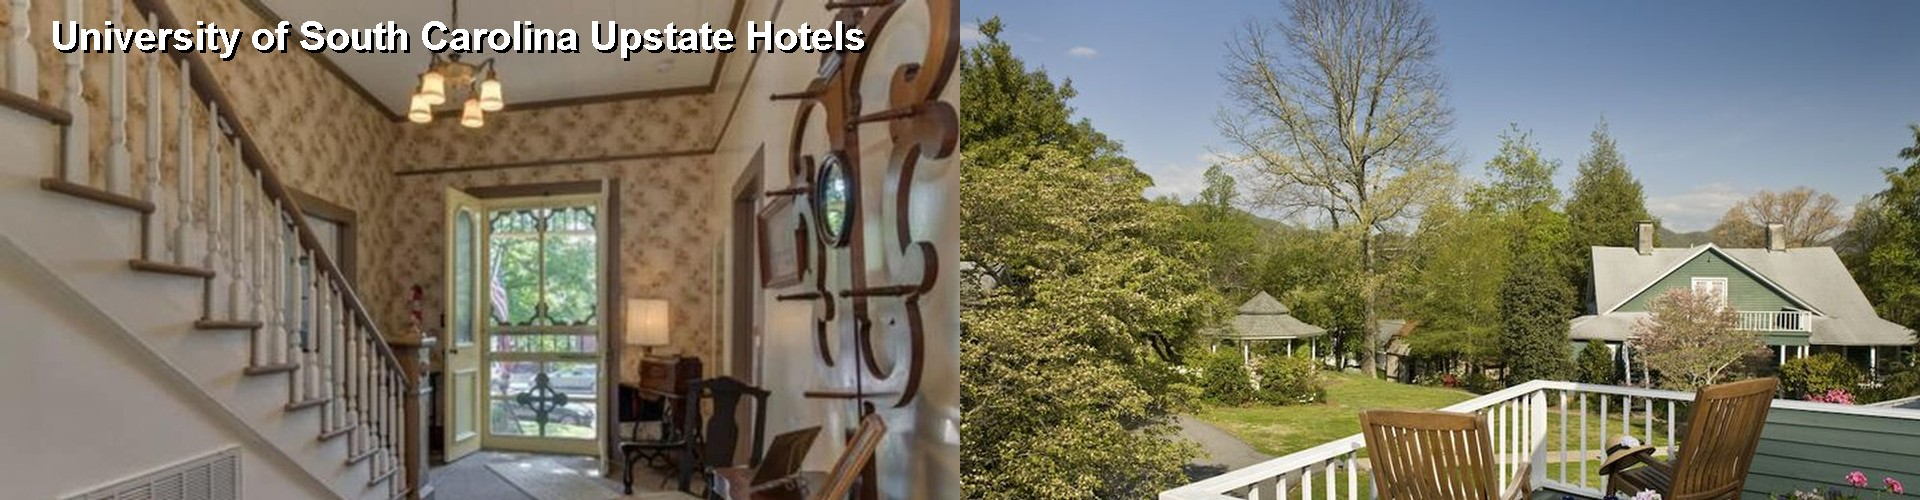 5 Best Hotels near University of South Carolina Upstate